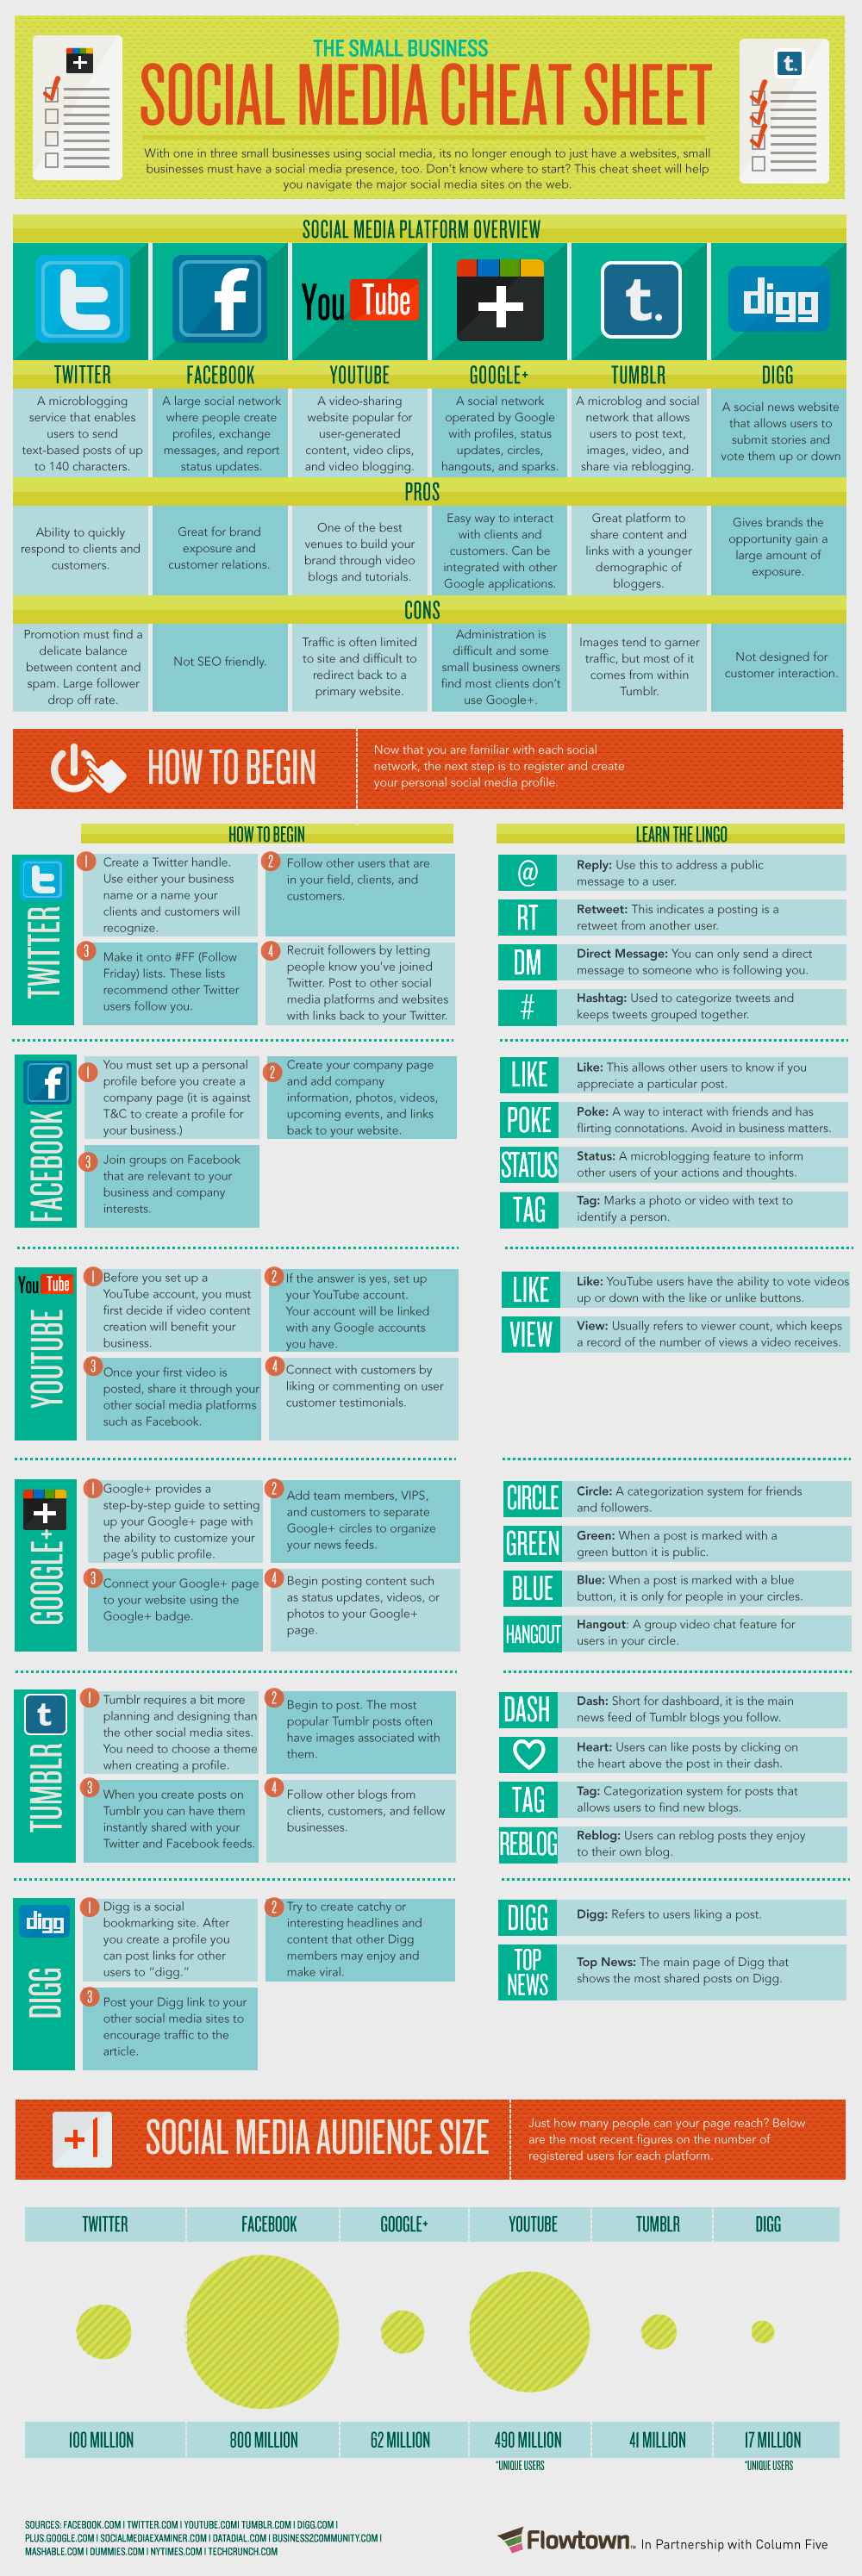 Social-Media-Cheat-Sheet-infographic